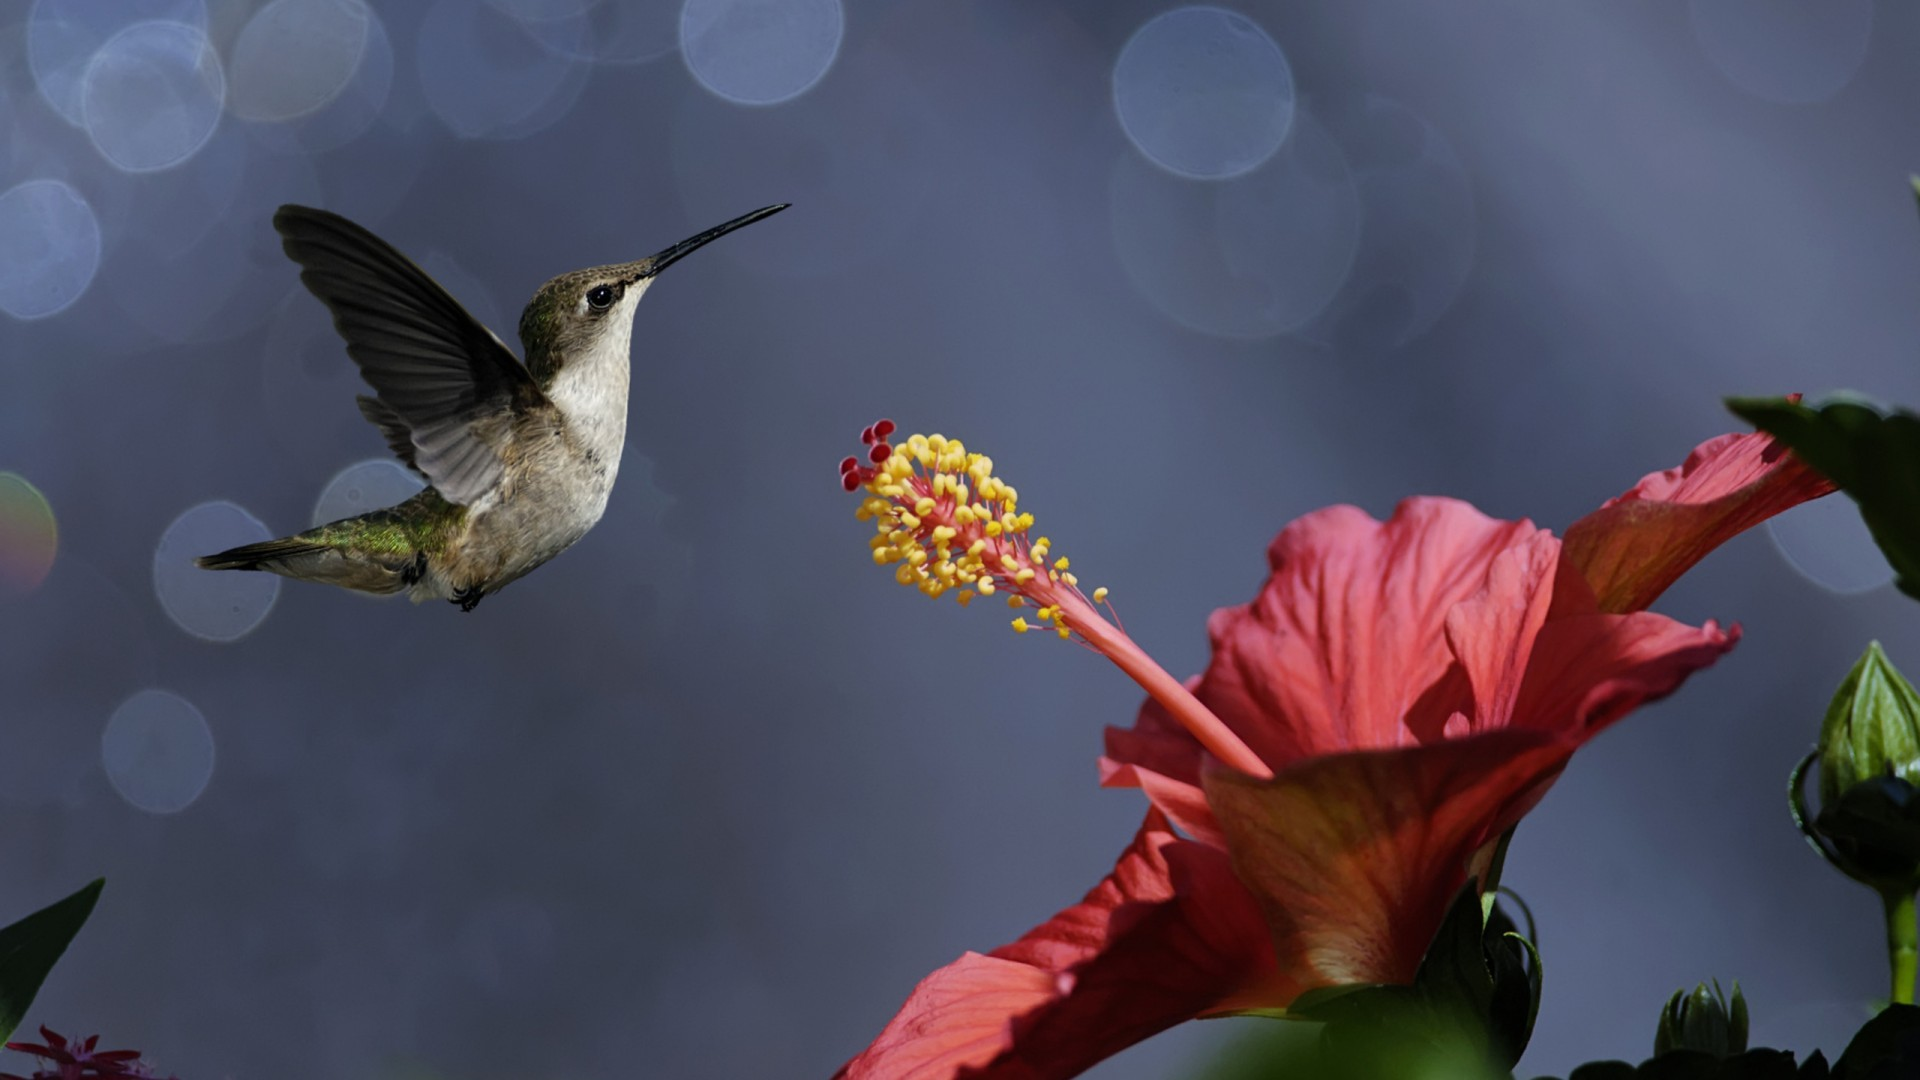 Iphone Flower Wallpaper: Nature Iphone Wallpaper Bird Hummingbird Flower 1920x1080px